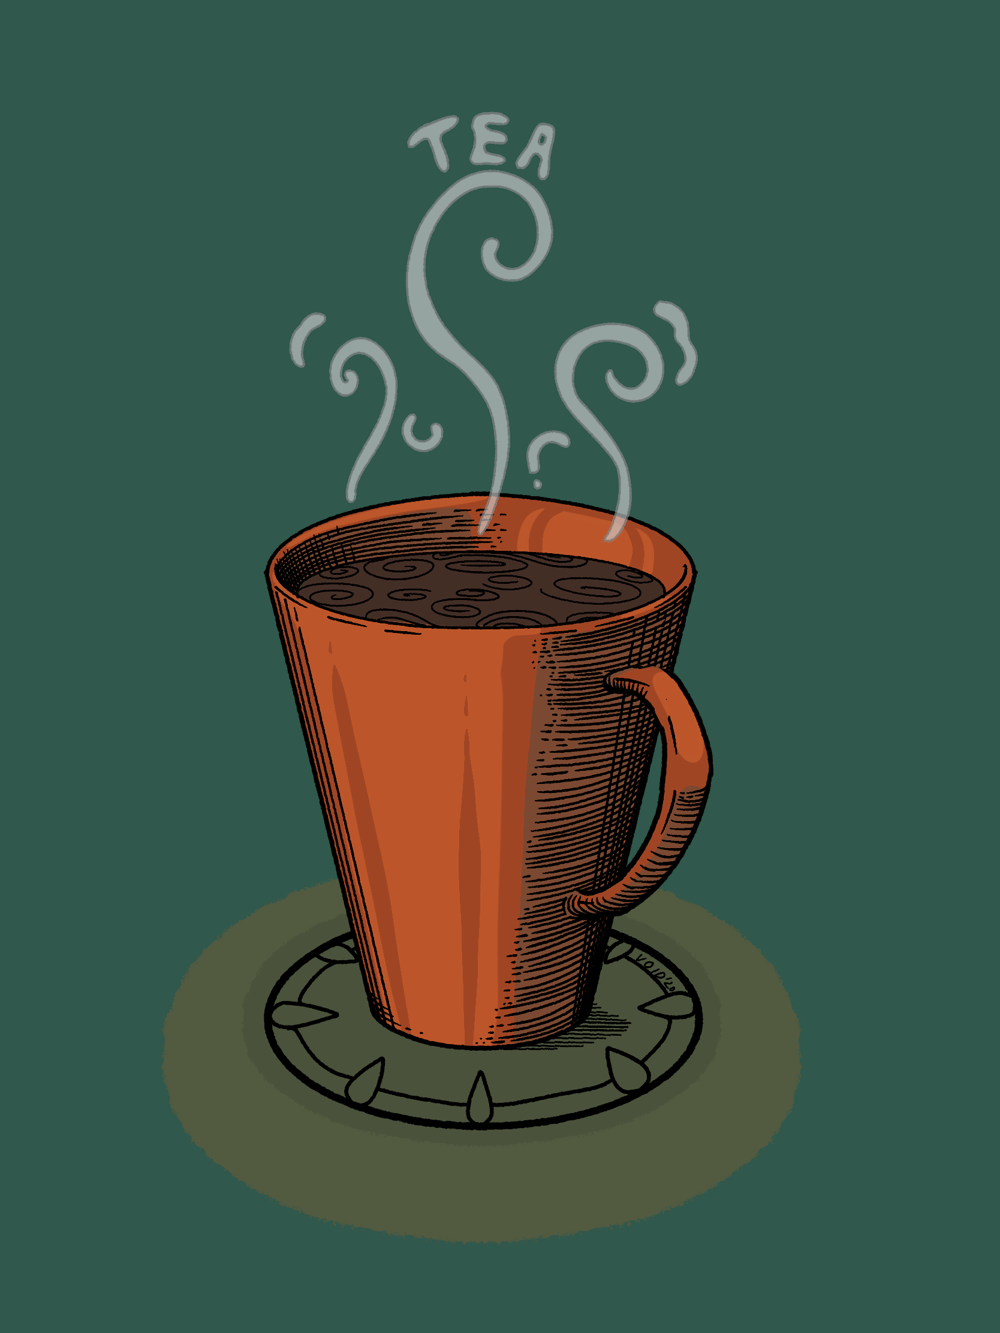 Tea and Music - image 2 - student project